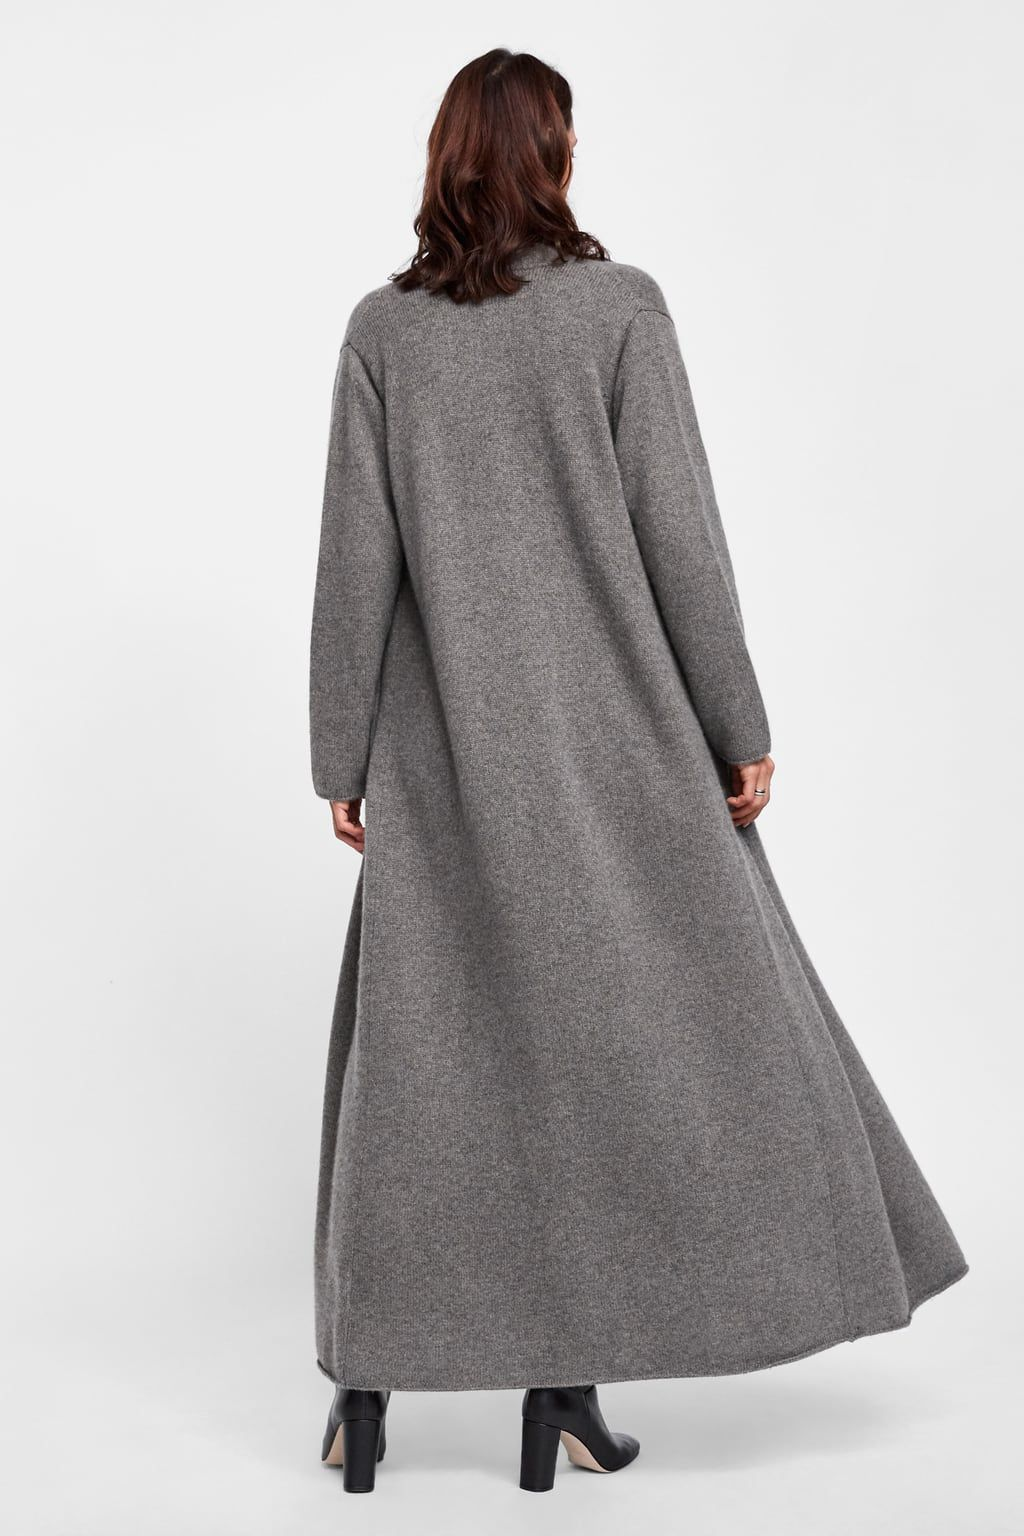 770c7ab79f59 LIMITED EDITION CASHMERE COAT-MINIMAL COLLECTION-WOMAN